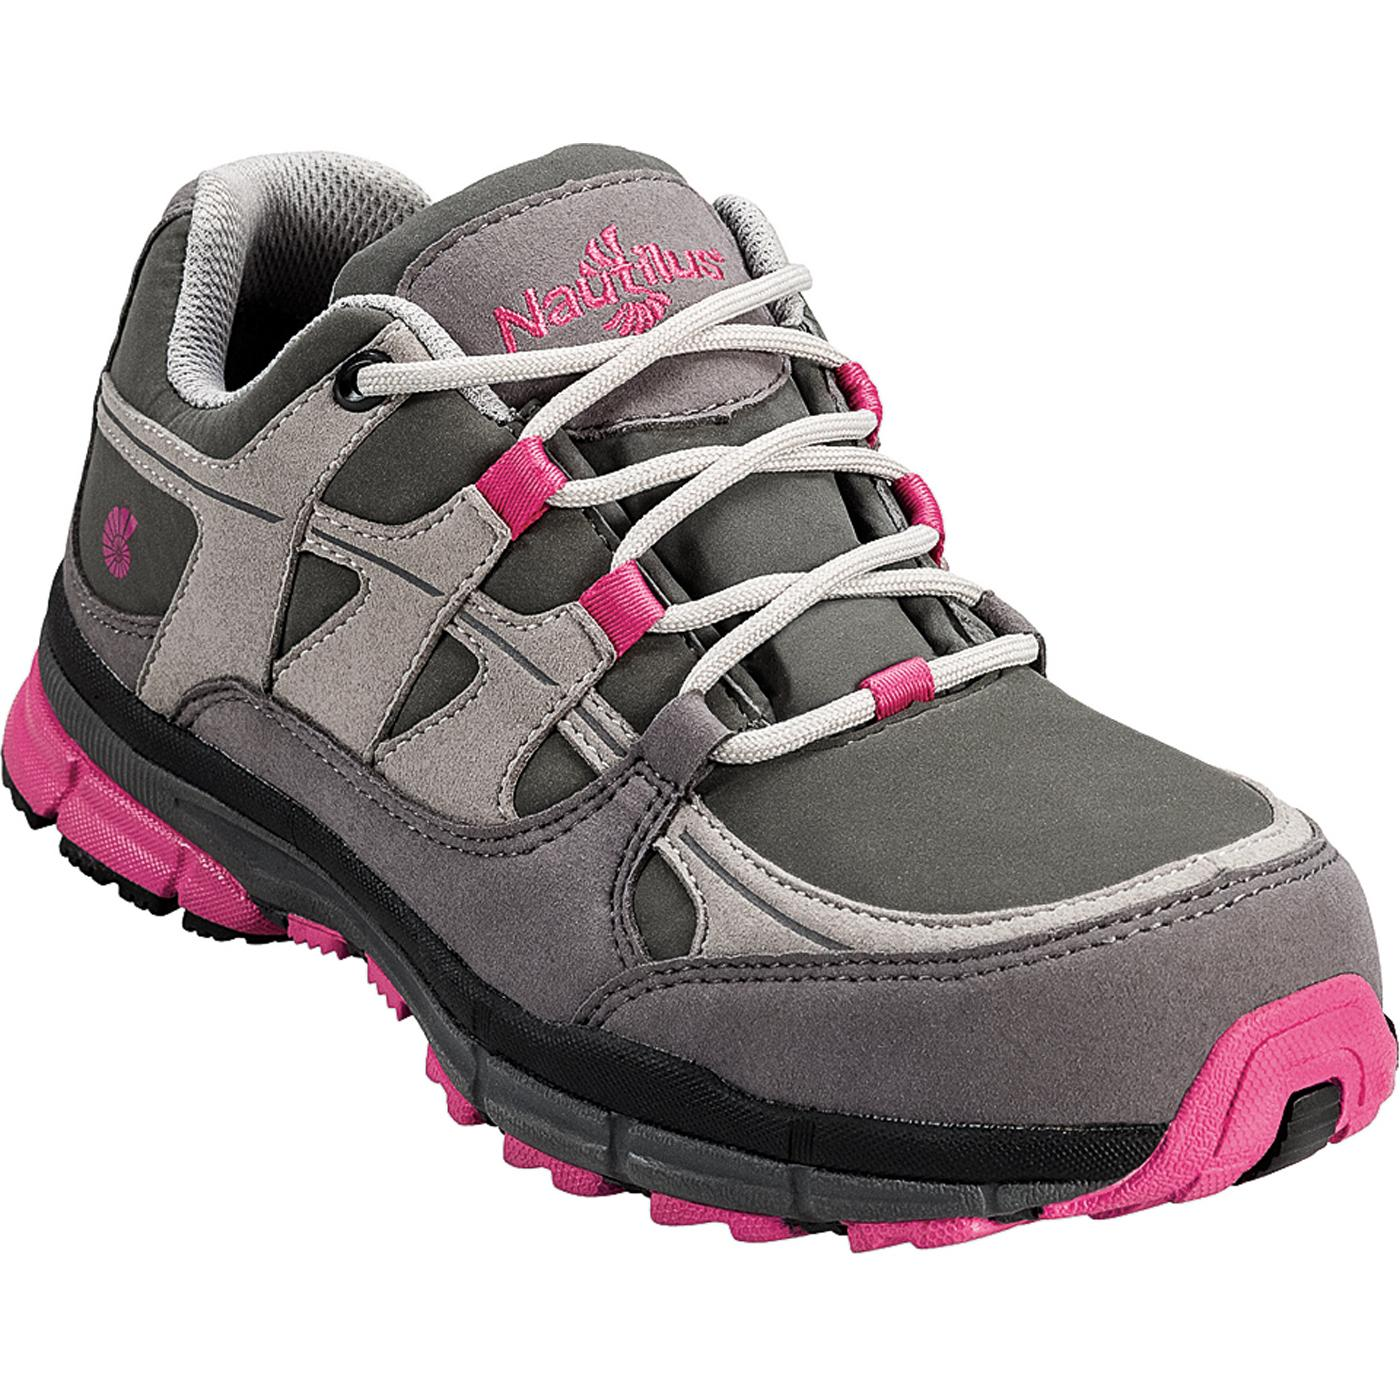 steel-toe-shoes-for-women-womens-work-compulsions